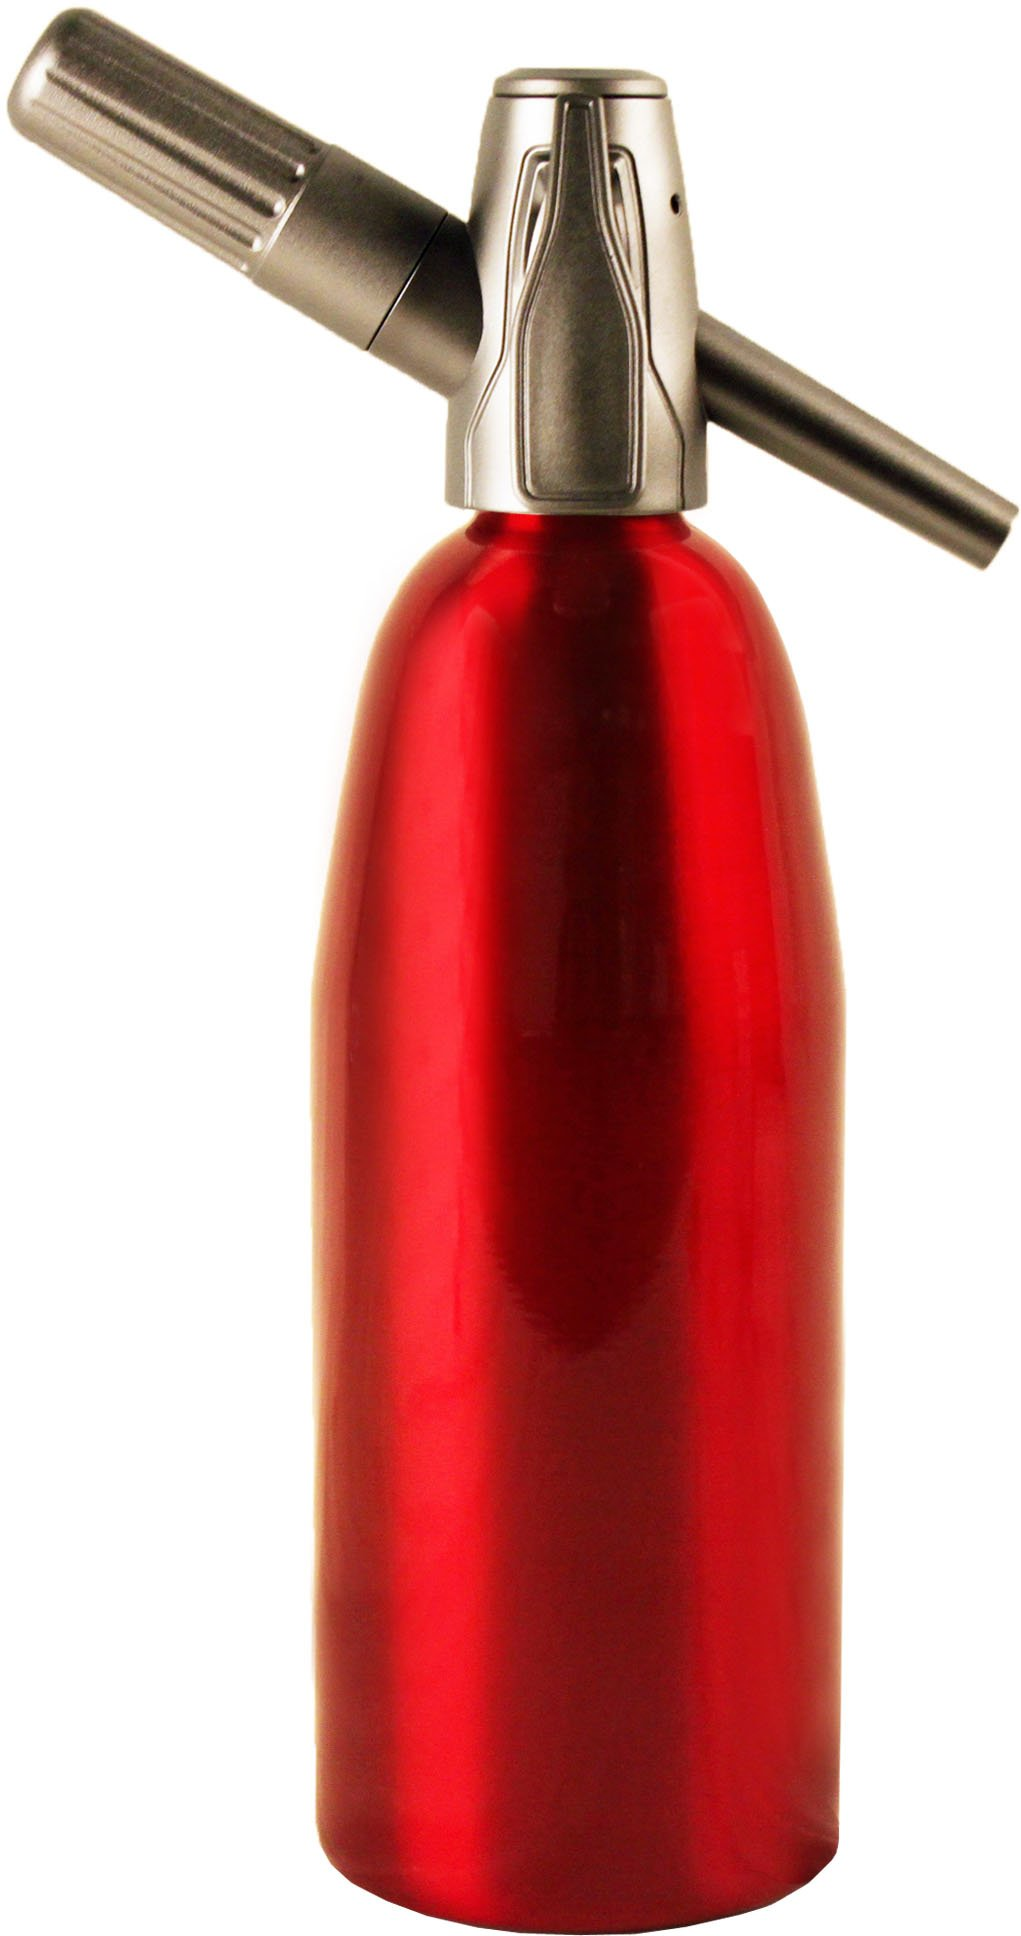 Creamright Sparkle Soda Siphon-Red by Creamright